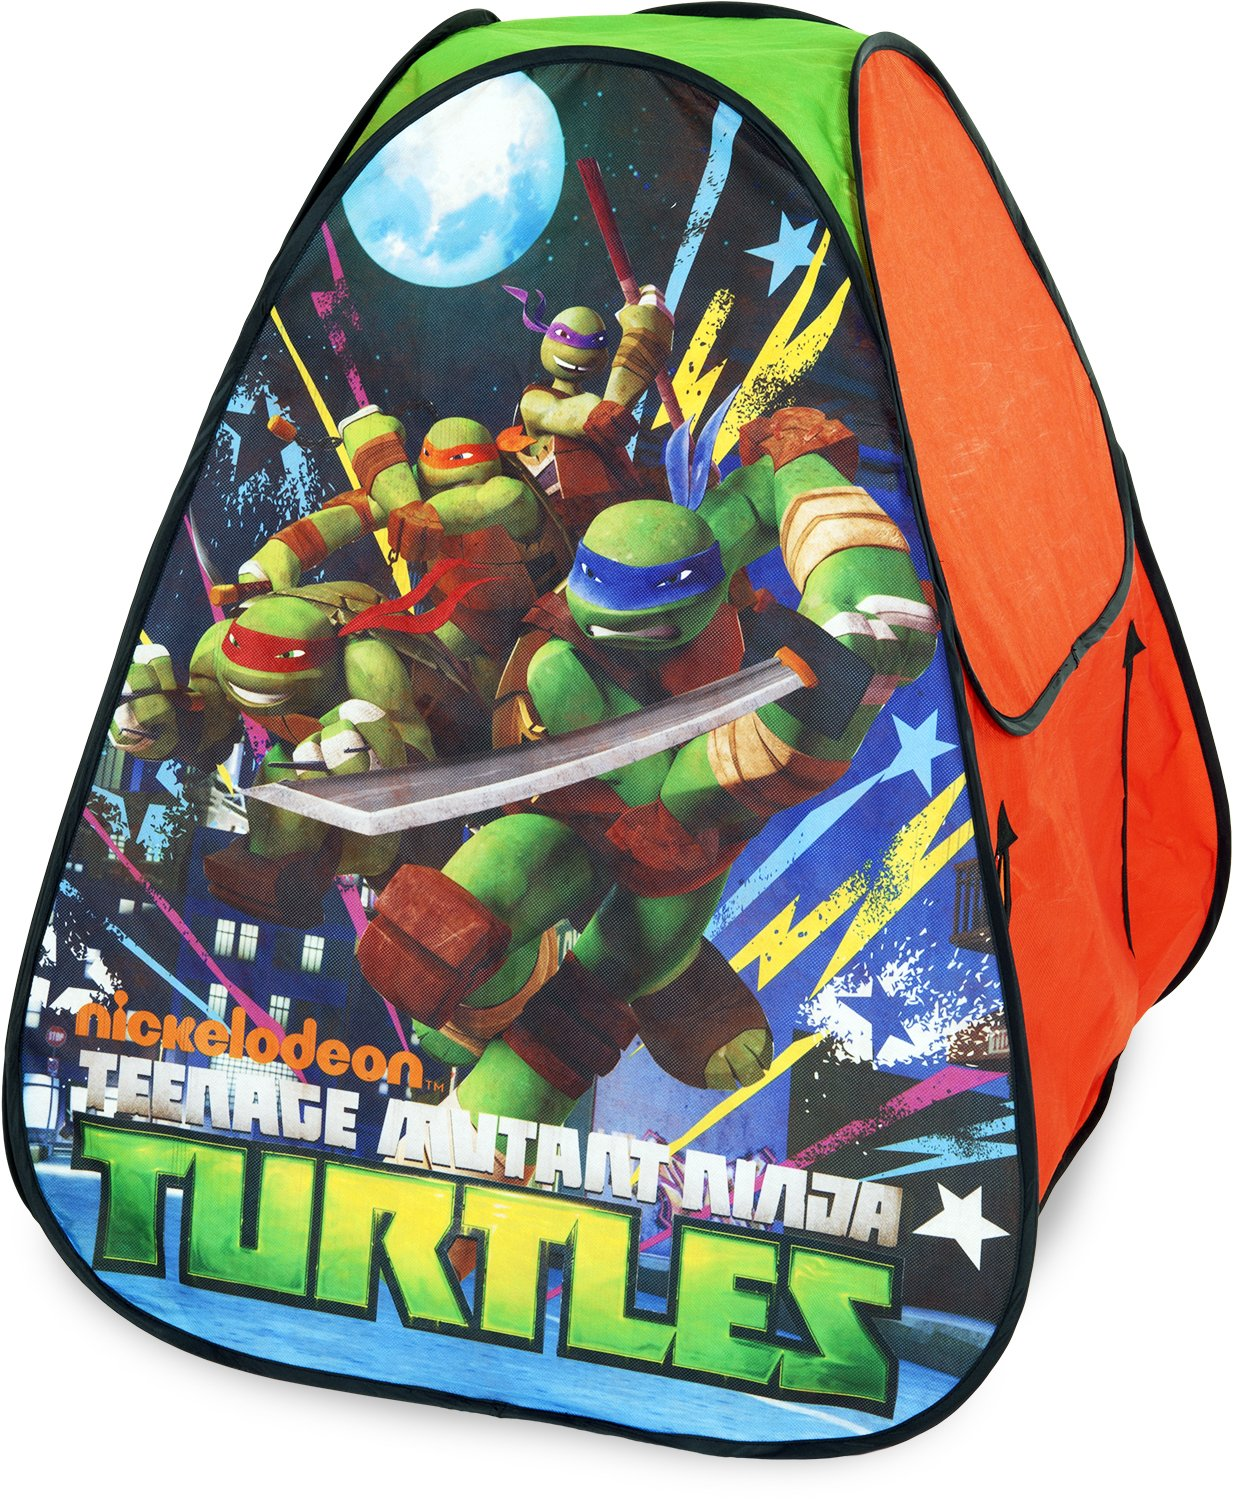 Amazon.com Playhut Teenage Mutant Ninja Turtles Classic Hideaway Tent Toys u0026 Games  sc 1 st  Amazon.com & Amazon.com: Playhut Teenage Mutant Ninja Turtles Classic Hideaway ...